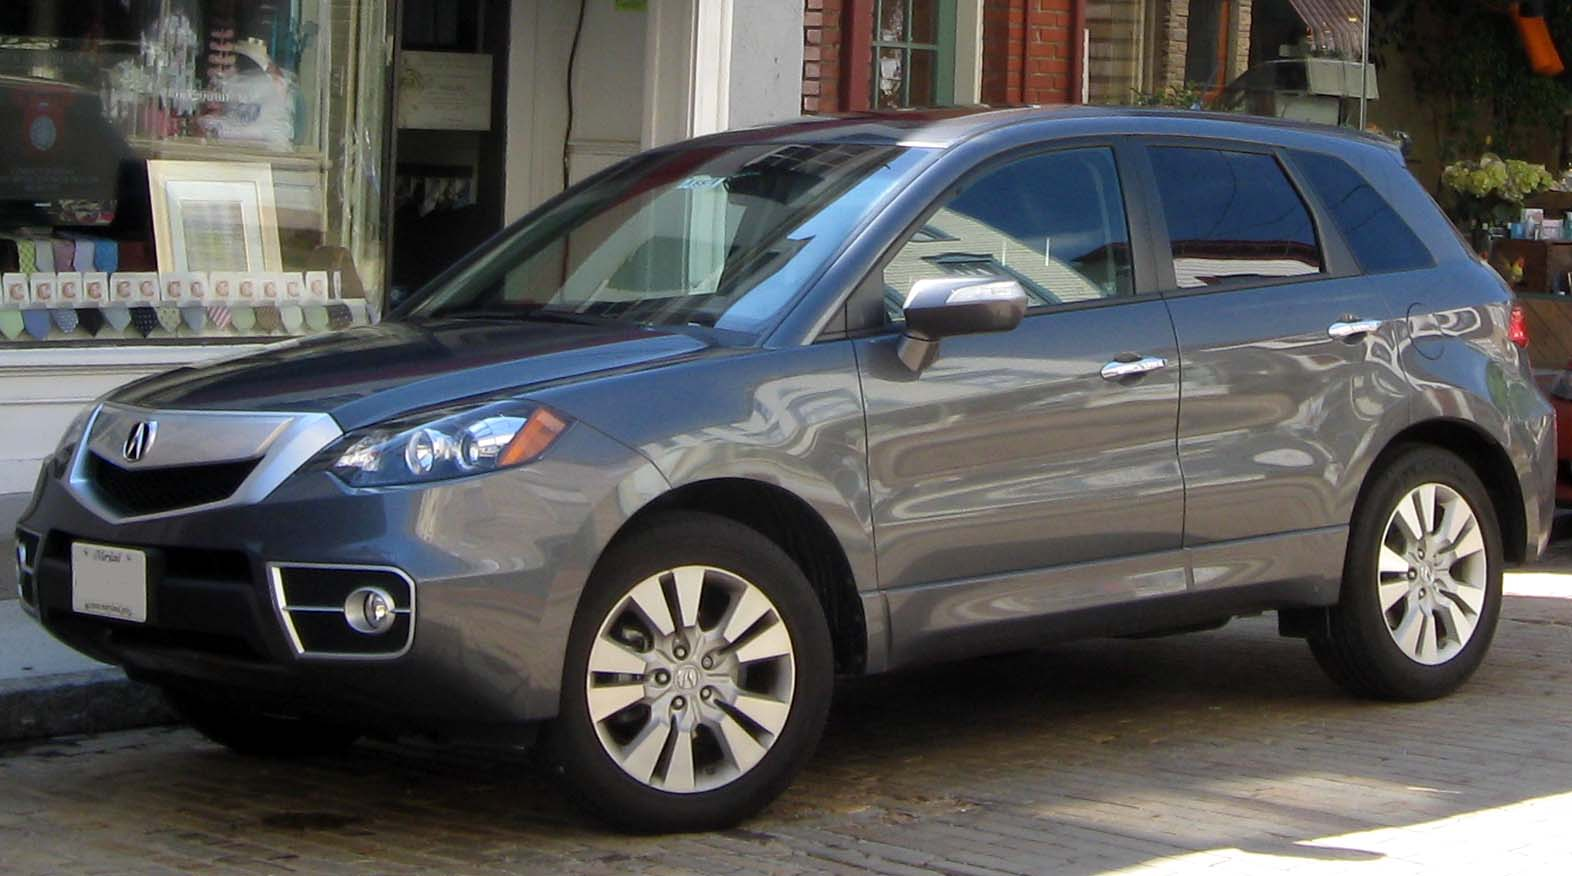 2010 Acura Rdx Image 14 HD Wallpapers Download free images and photos [musssic.tk]